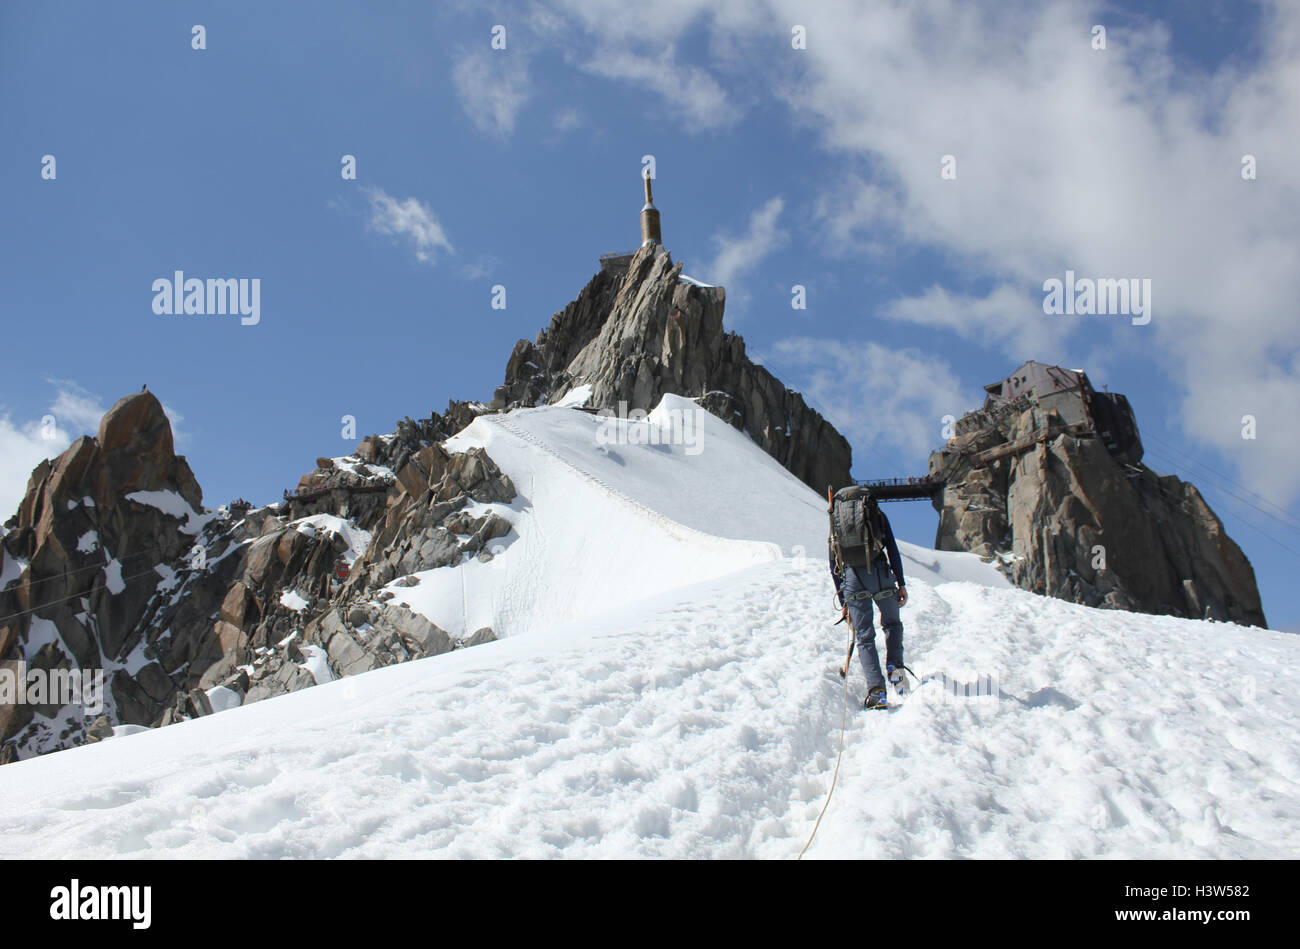 Approaching the Aiguille du Midi cable car after a day climbing on the Mountain - Stock Image